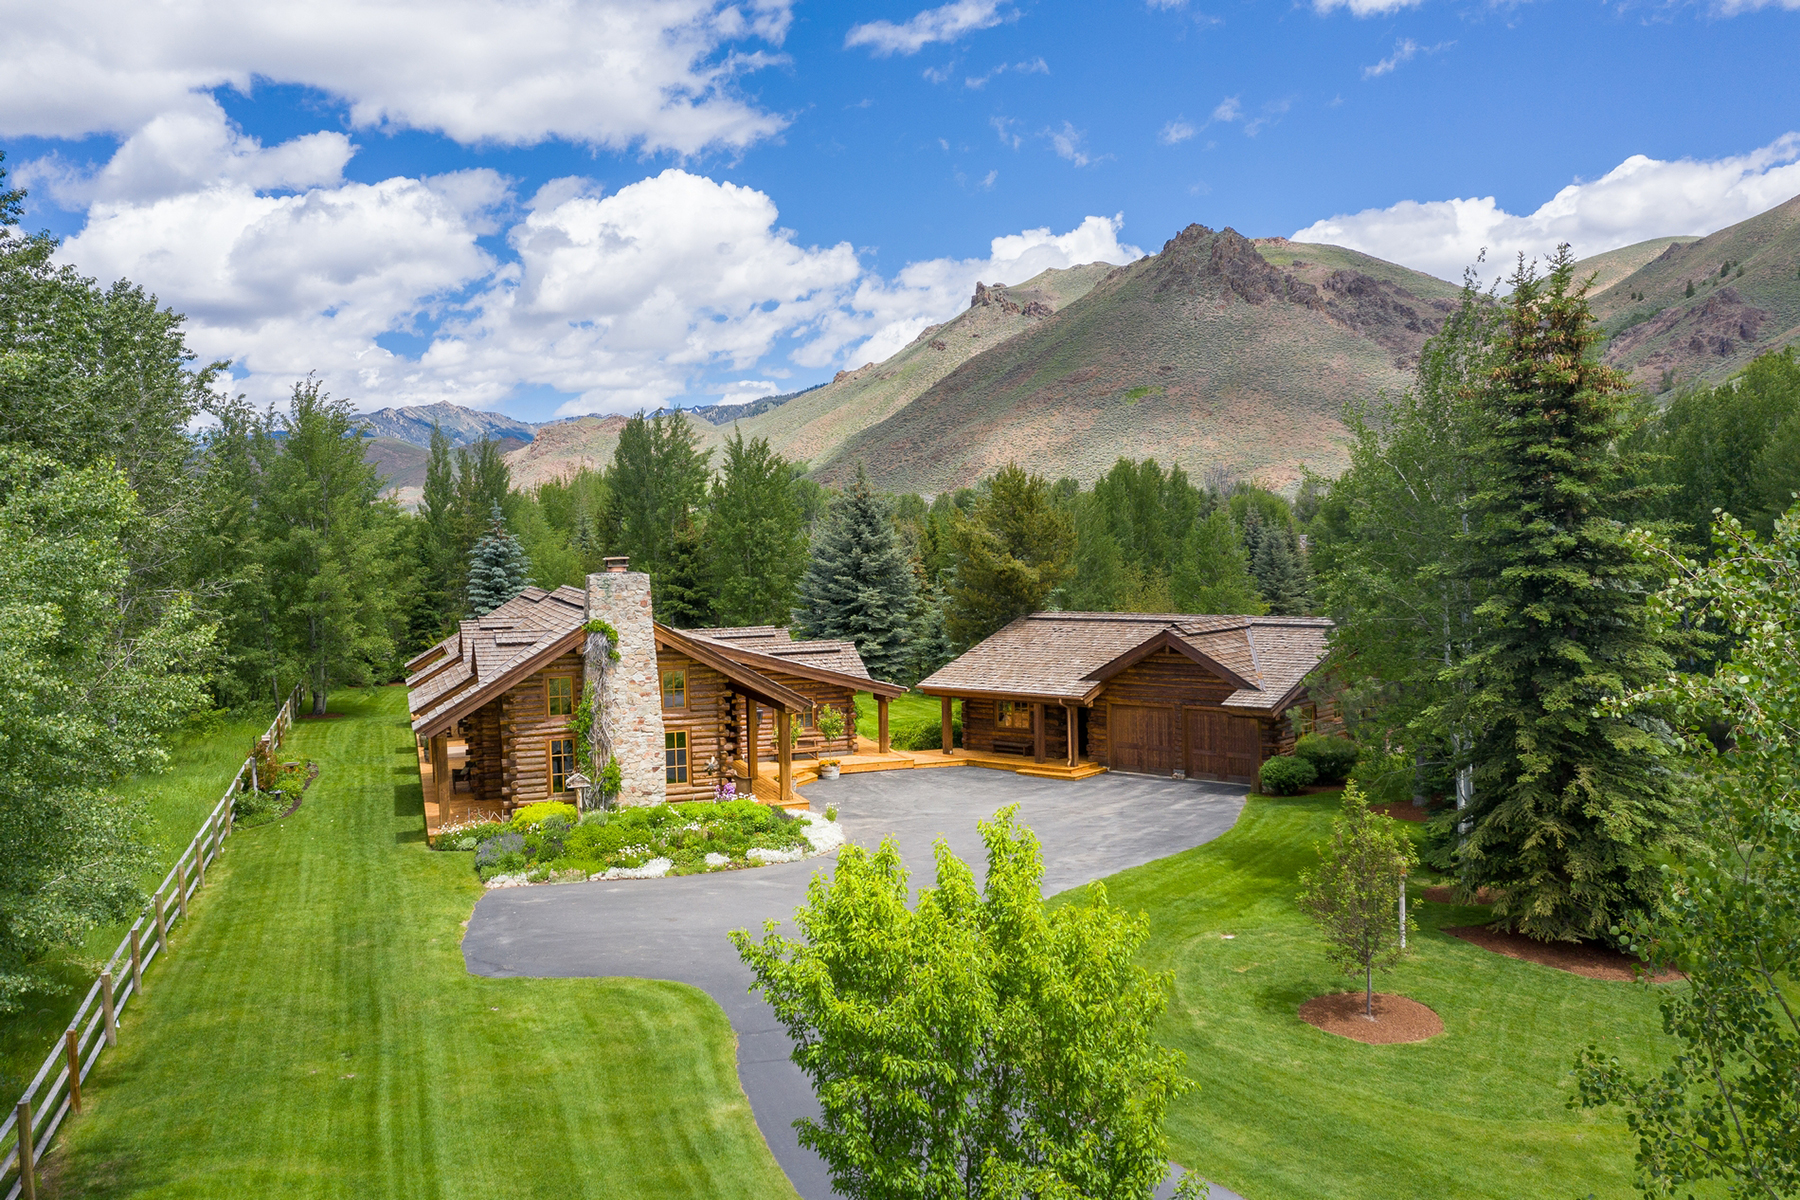 Single Family Homes for Sale at Exclusive Adams Gulch location 121 Old Mill Road Ketchum, Idaho 83340 United States